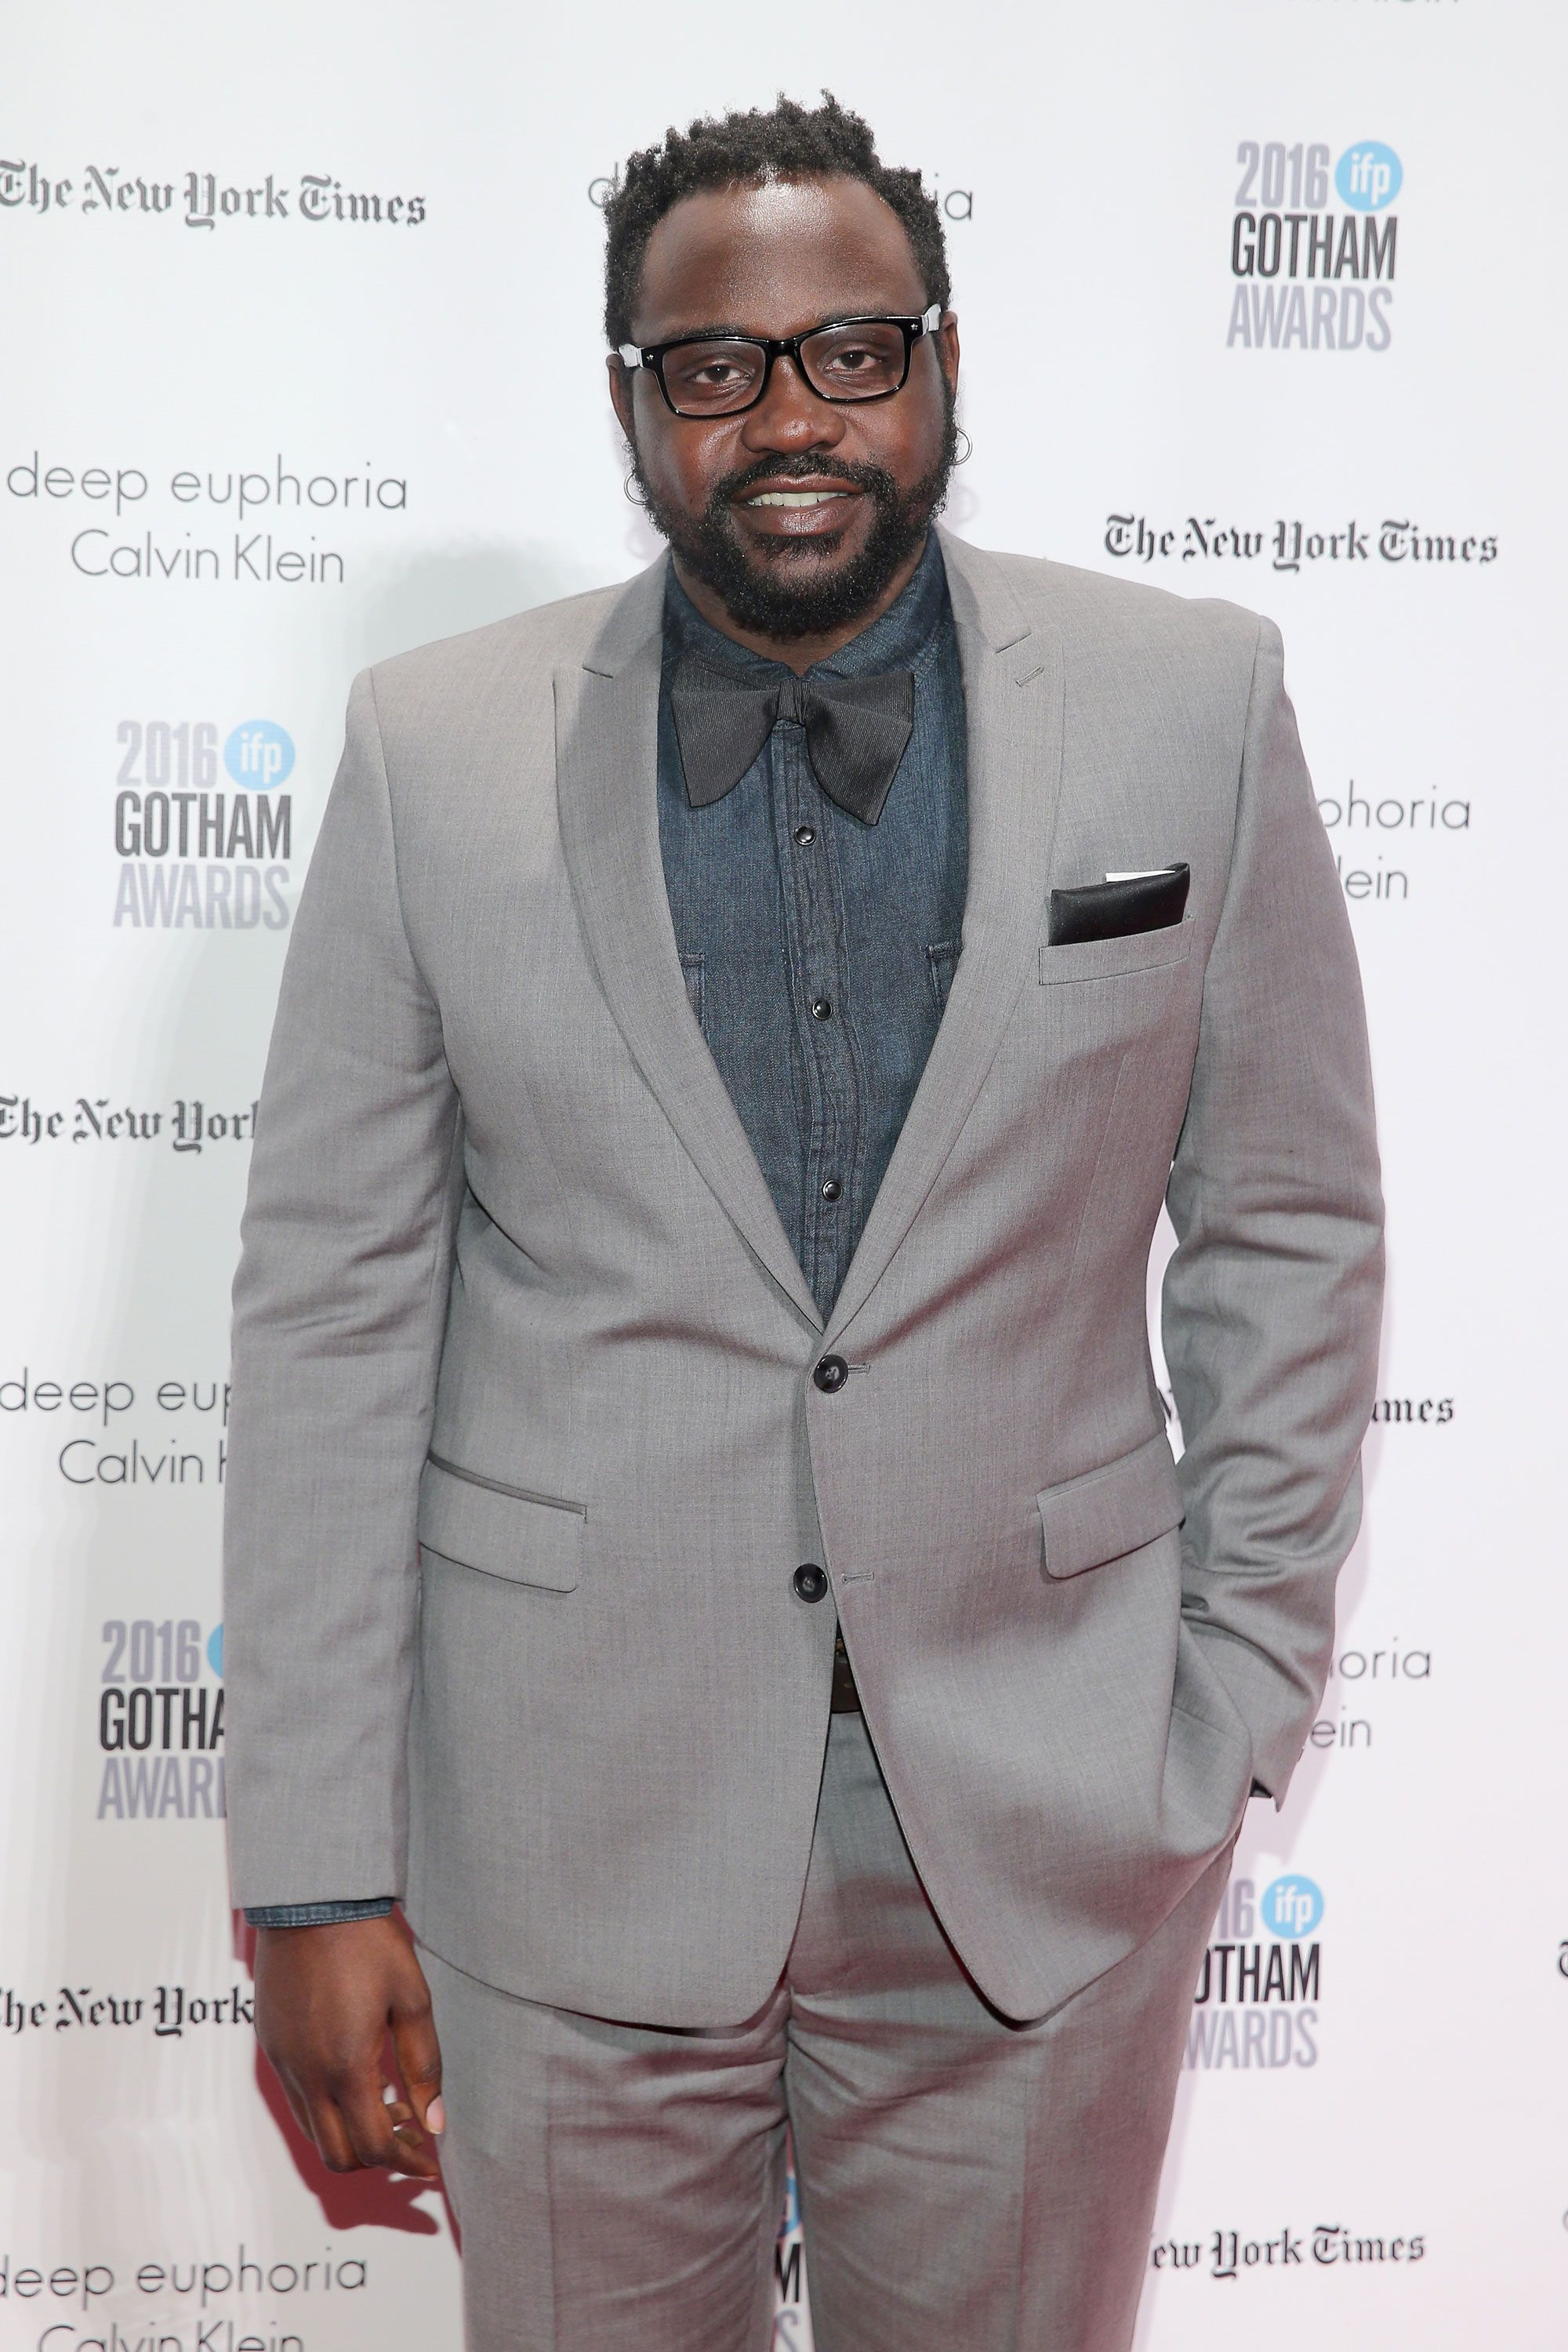 Brian Tyree Henry and Sterling K. Brown 'Screamed' After Getting Their Emmy Noms